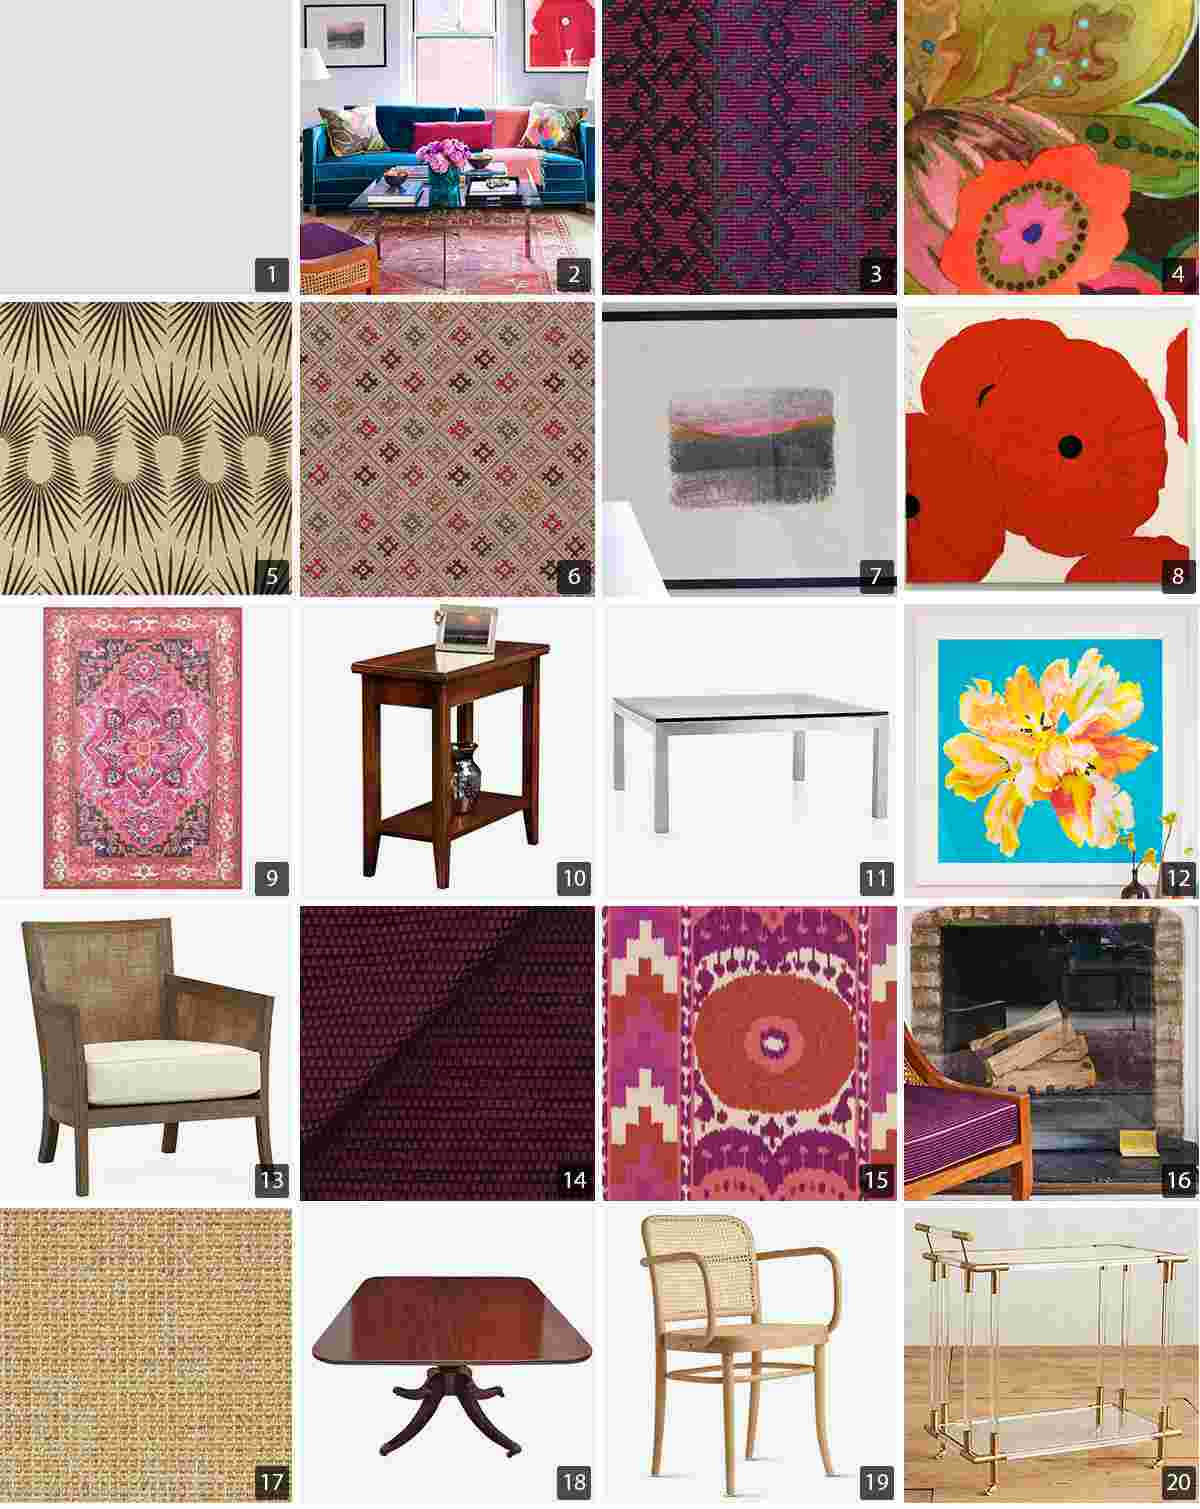 Collage of home products including colorful fabrics, accent chairs, and flower art photo